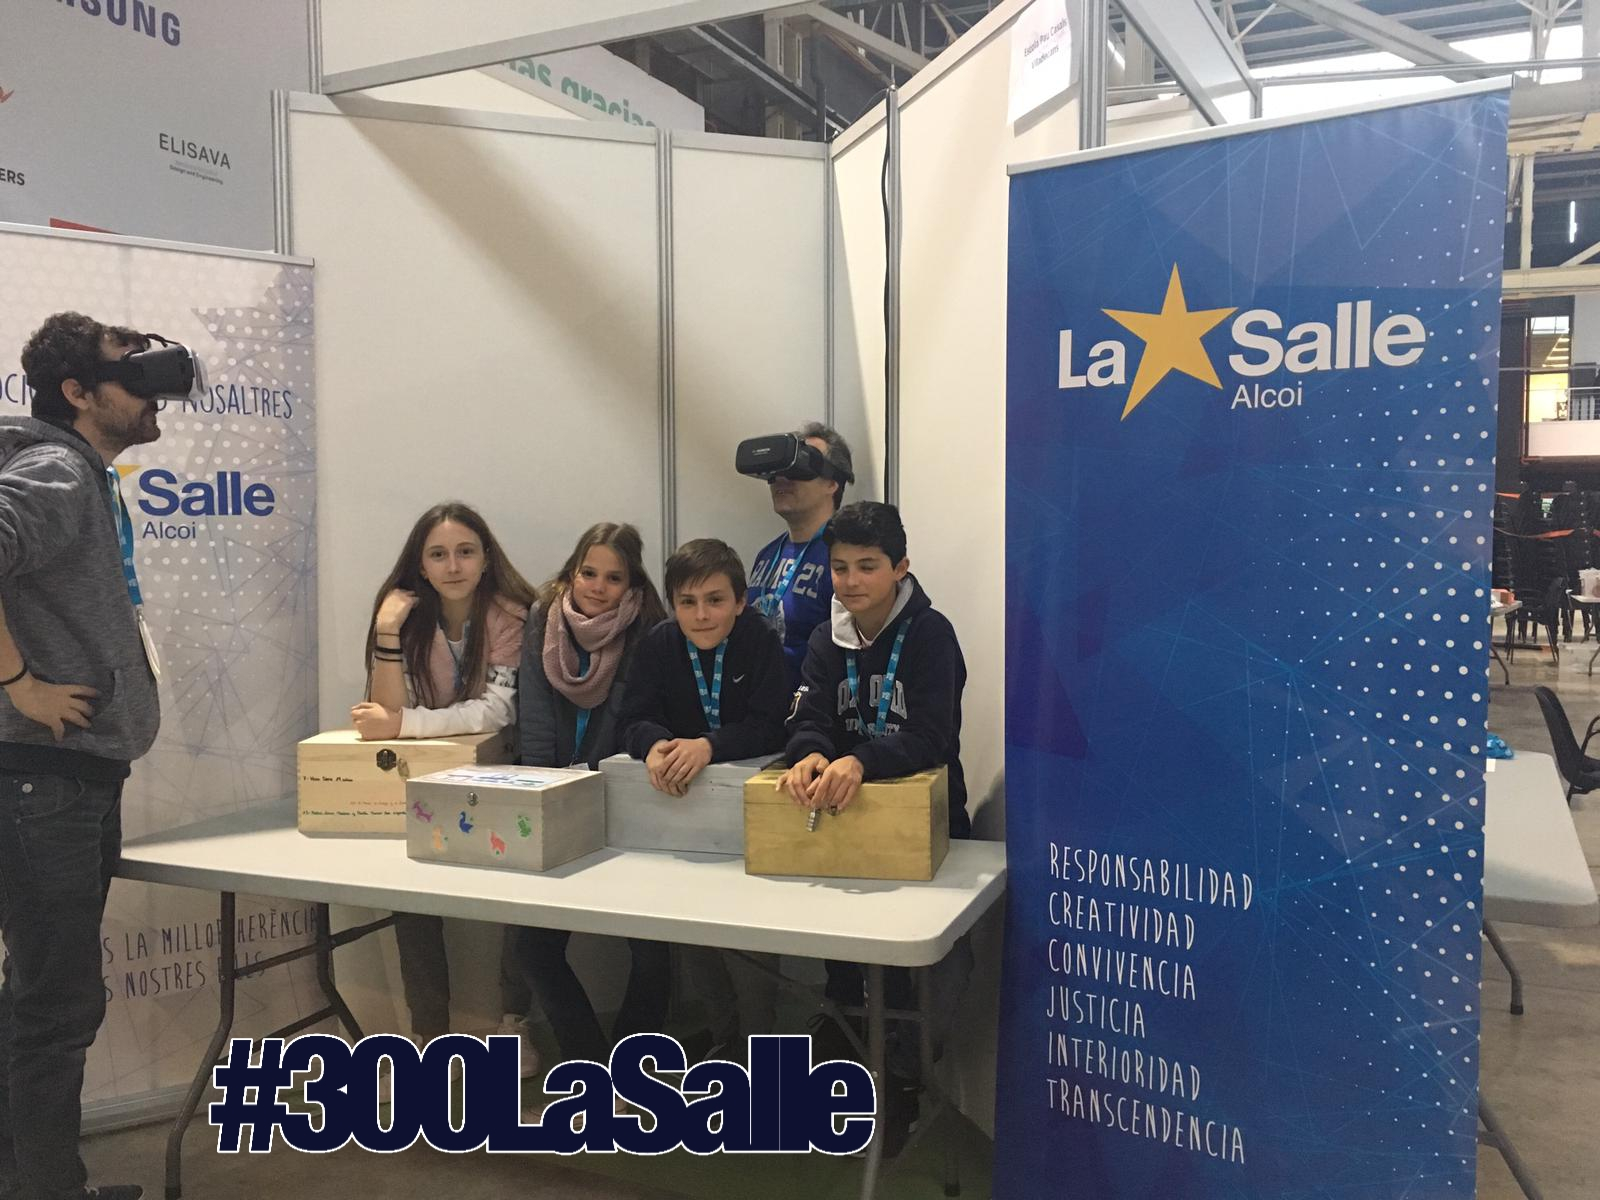 La Salle Alcoi participa en el YOMO, The Youth Mobile festival, dentro del MWC (Mobile World Congress) de Barcelona.